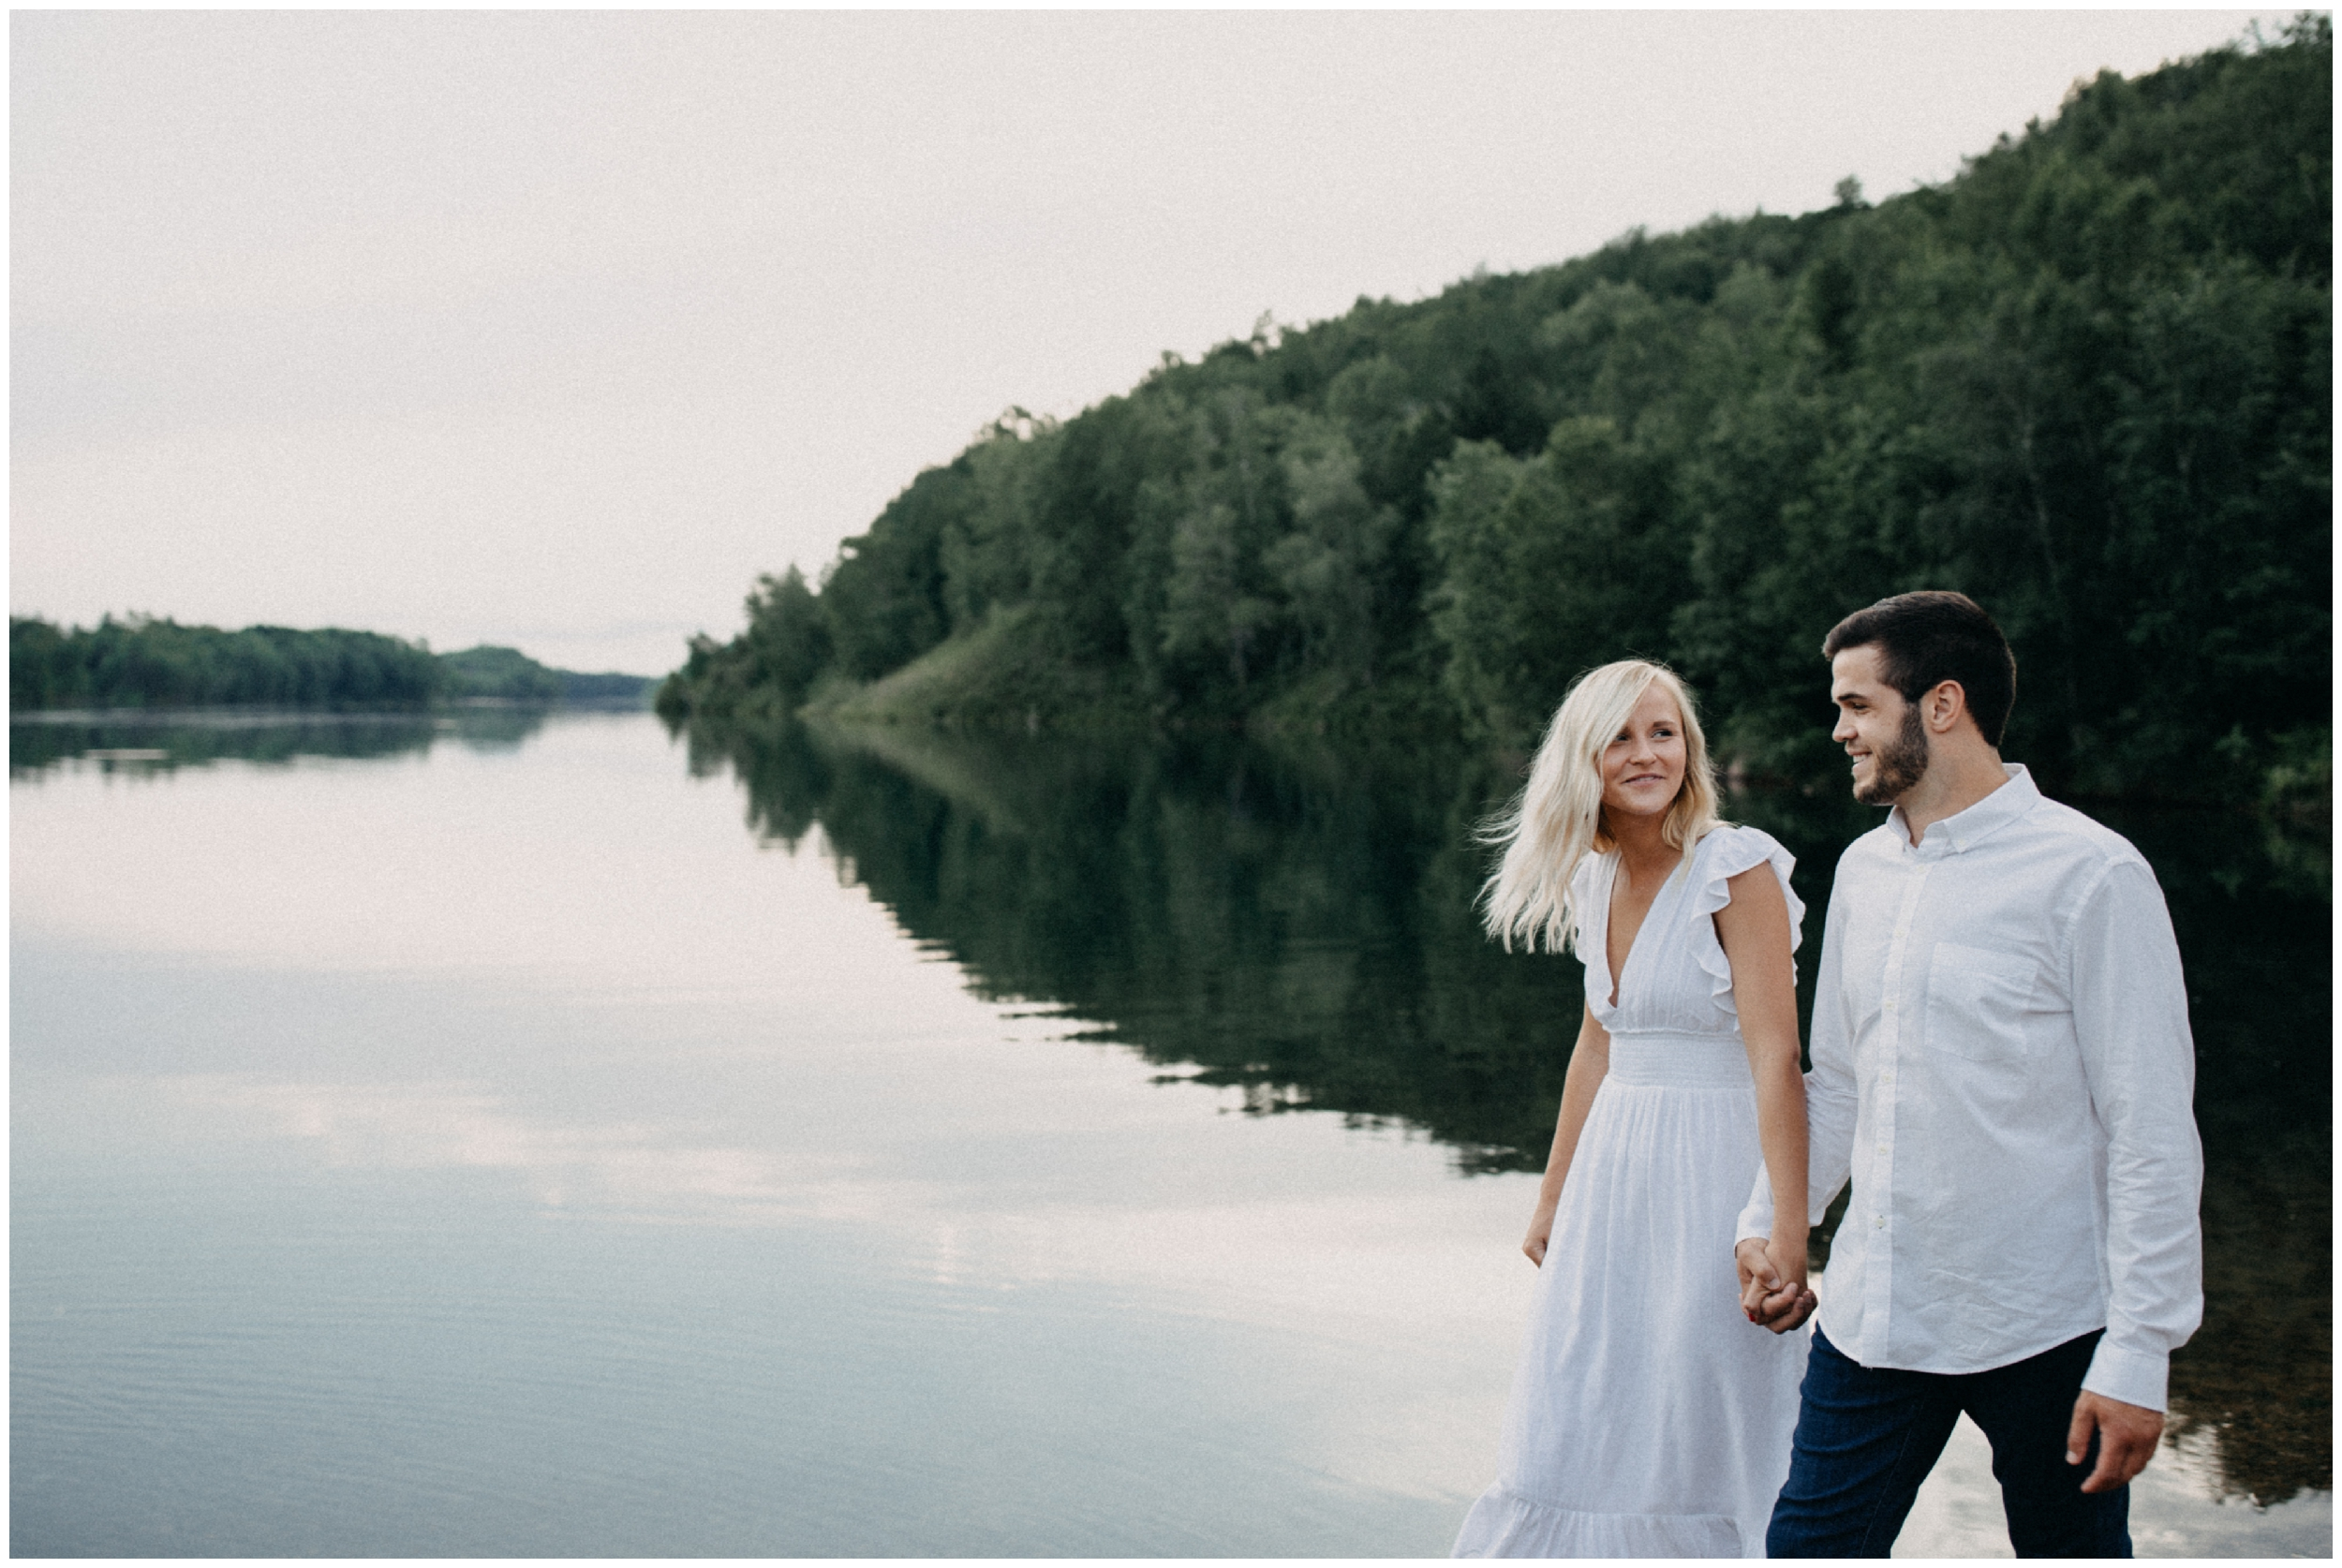 Lakeside engagement in Crosby, Minnesota